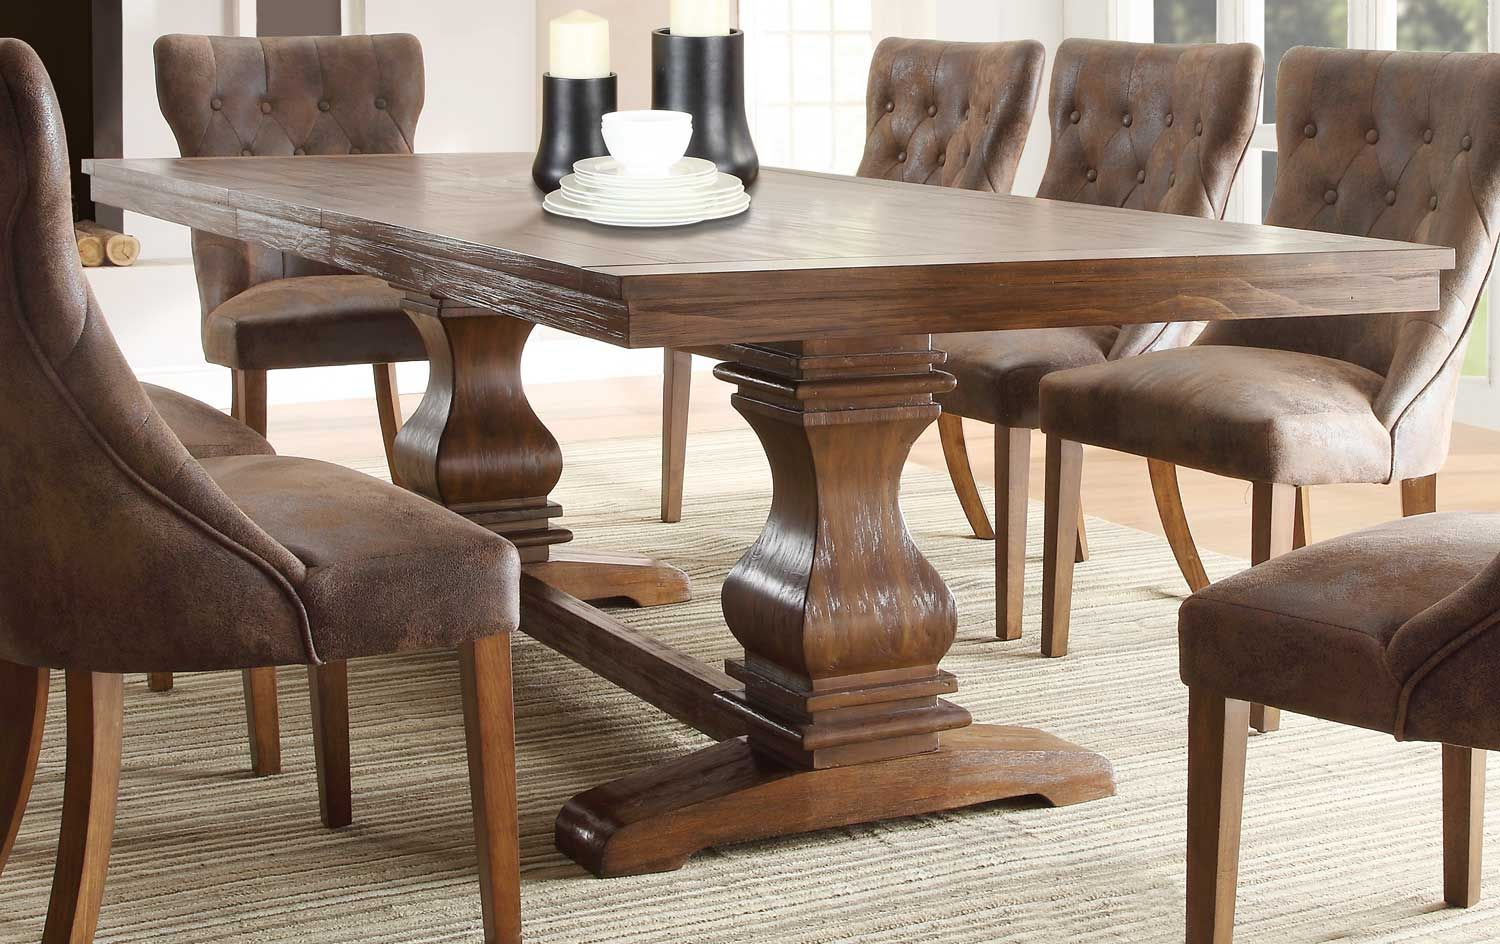 Homelegance marie louise dining table rustic oak brown